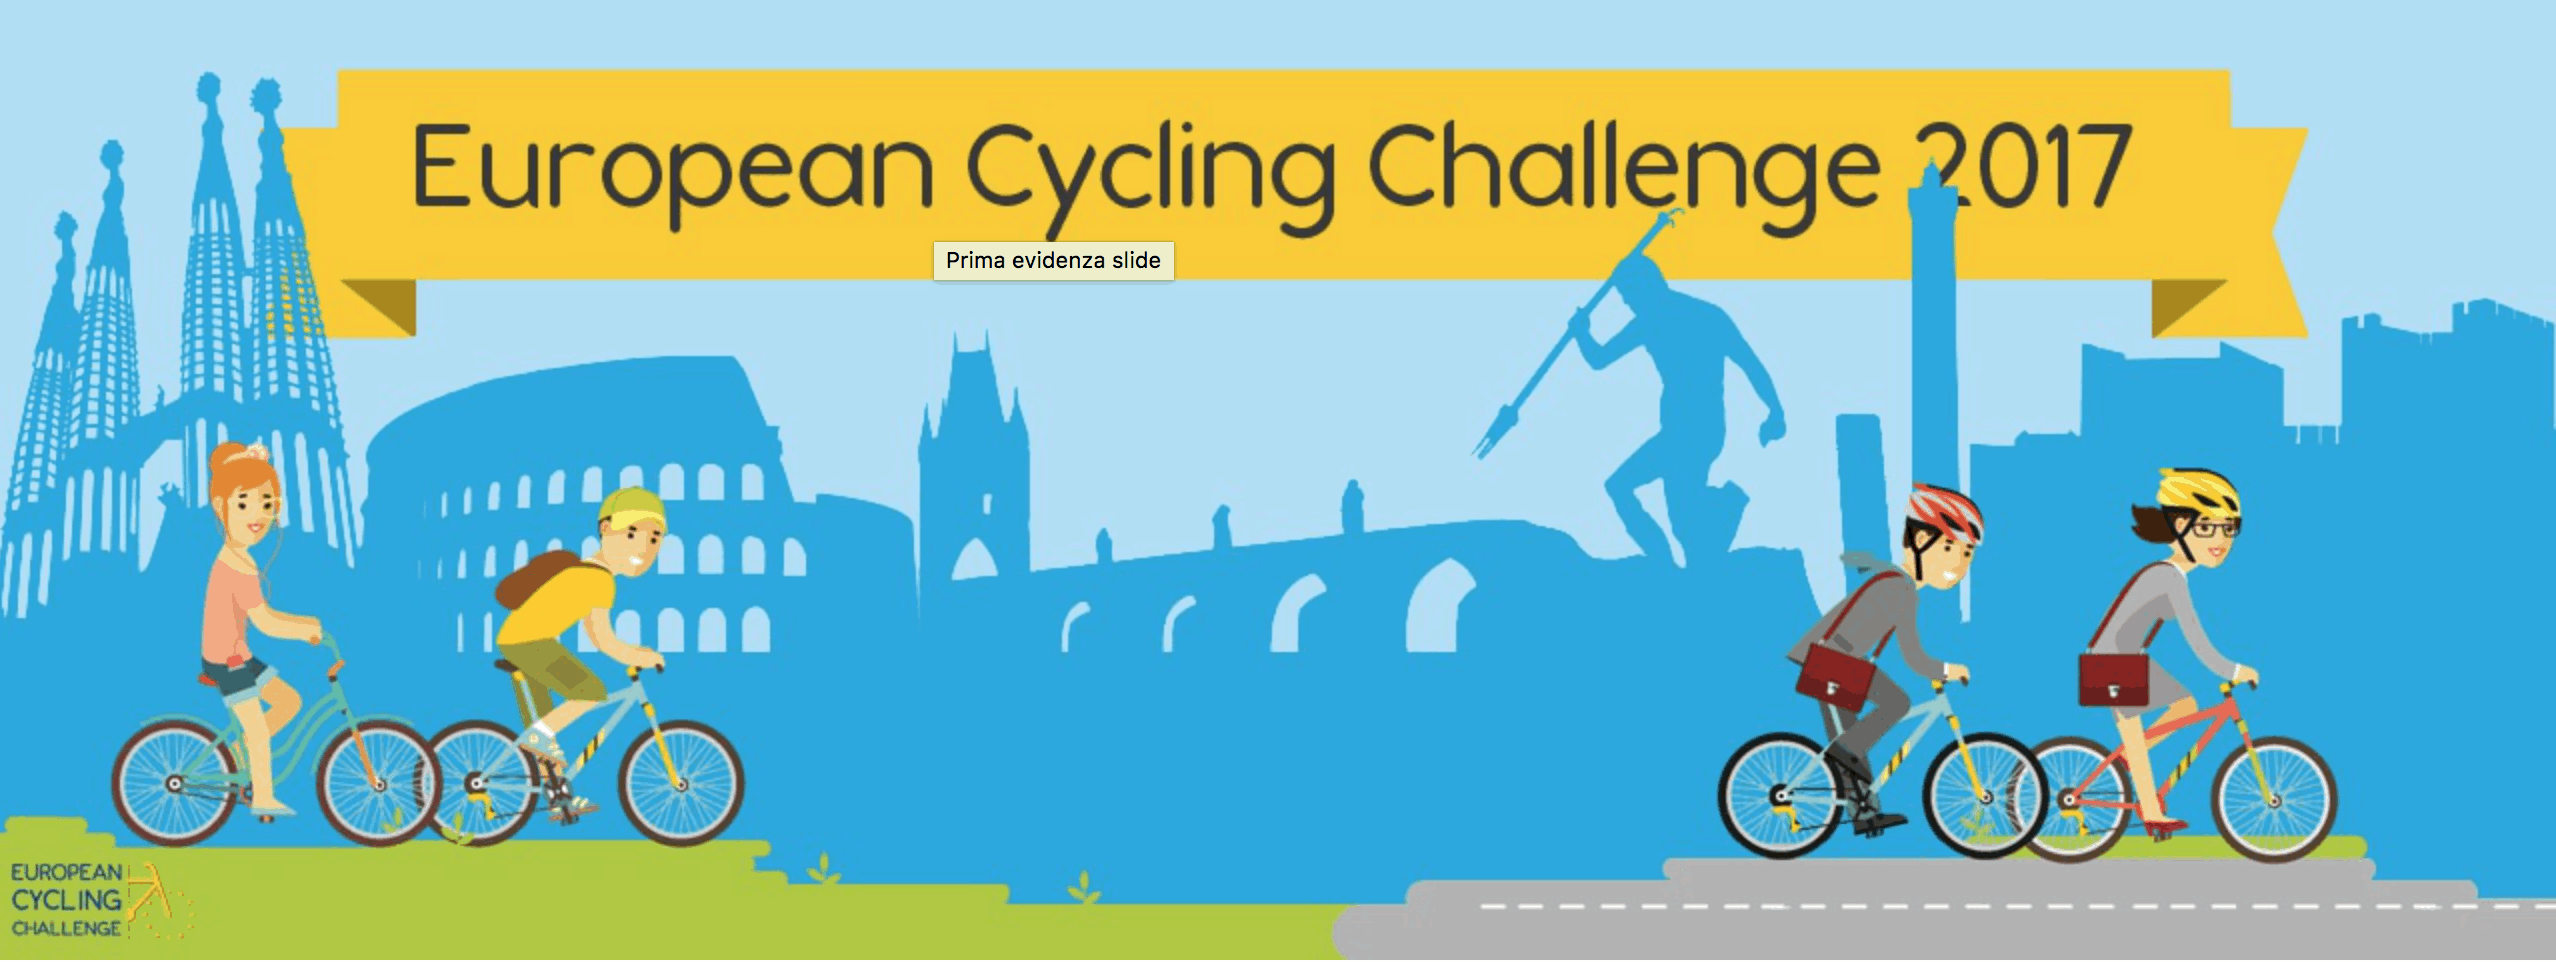 European Cycling Challenge